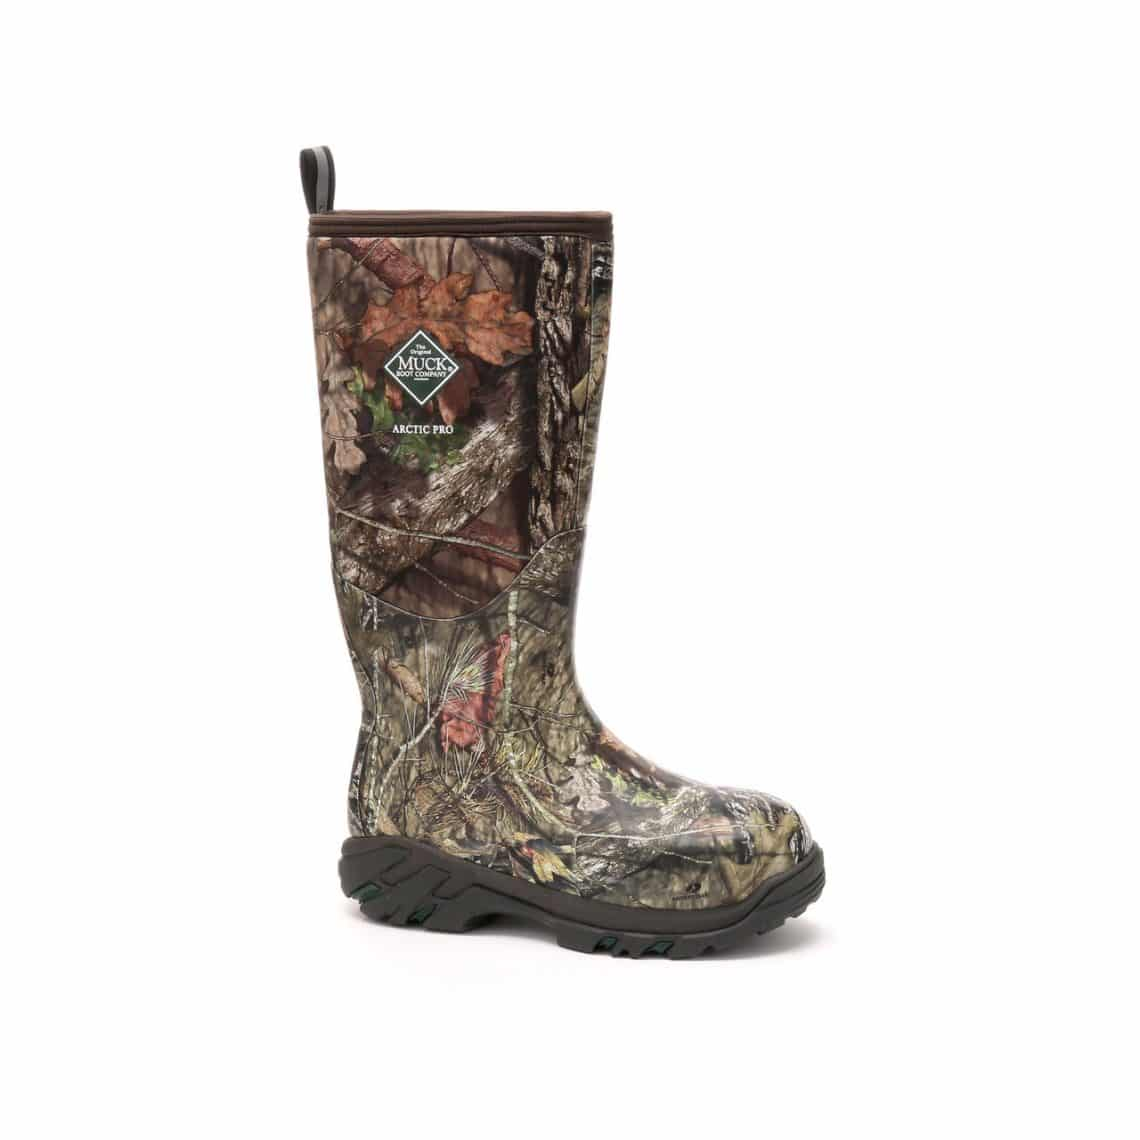 watch aea99 f6b2e MUCK MEN'S ARCTIC PRO (-60° TO 40°) HUNTING BOOTS CAMO